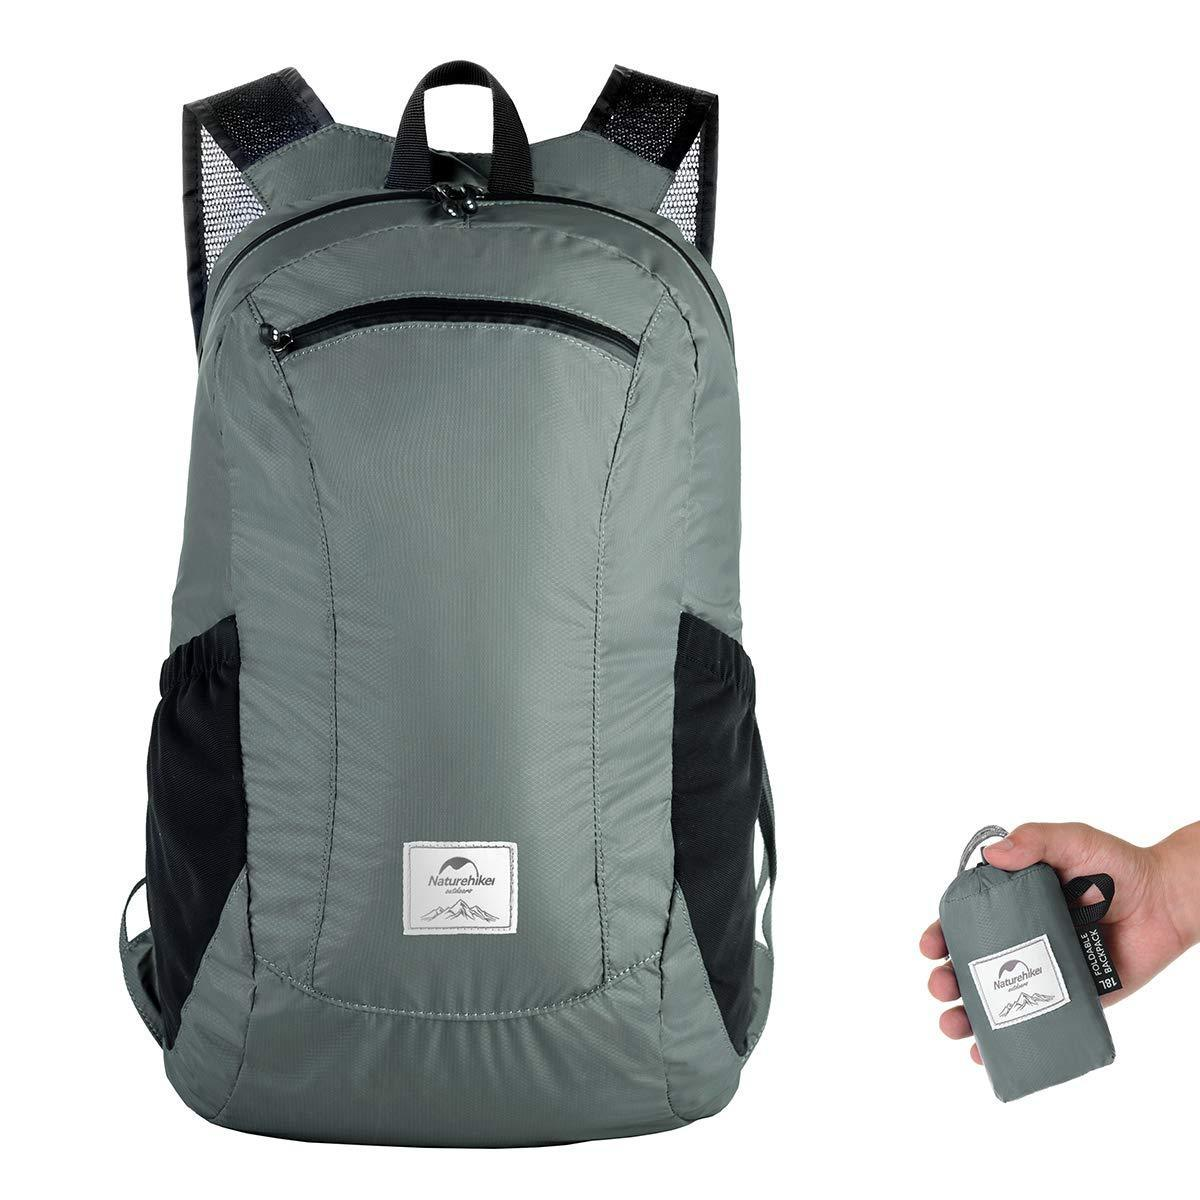 Foldable Lightweight Packable Backpack